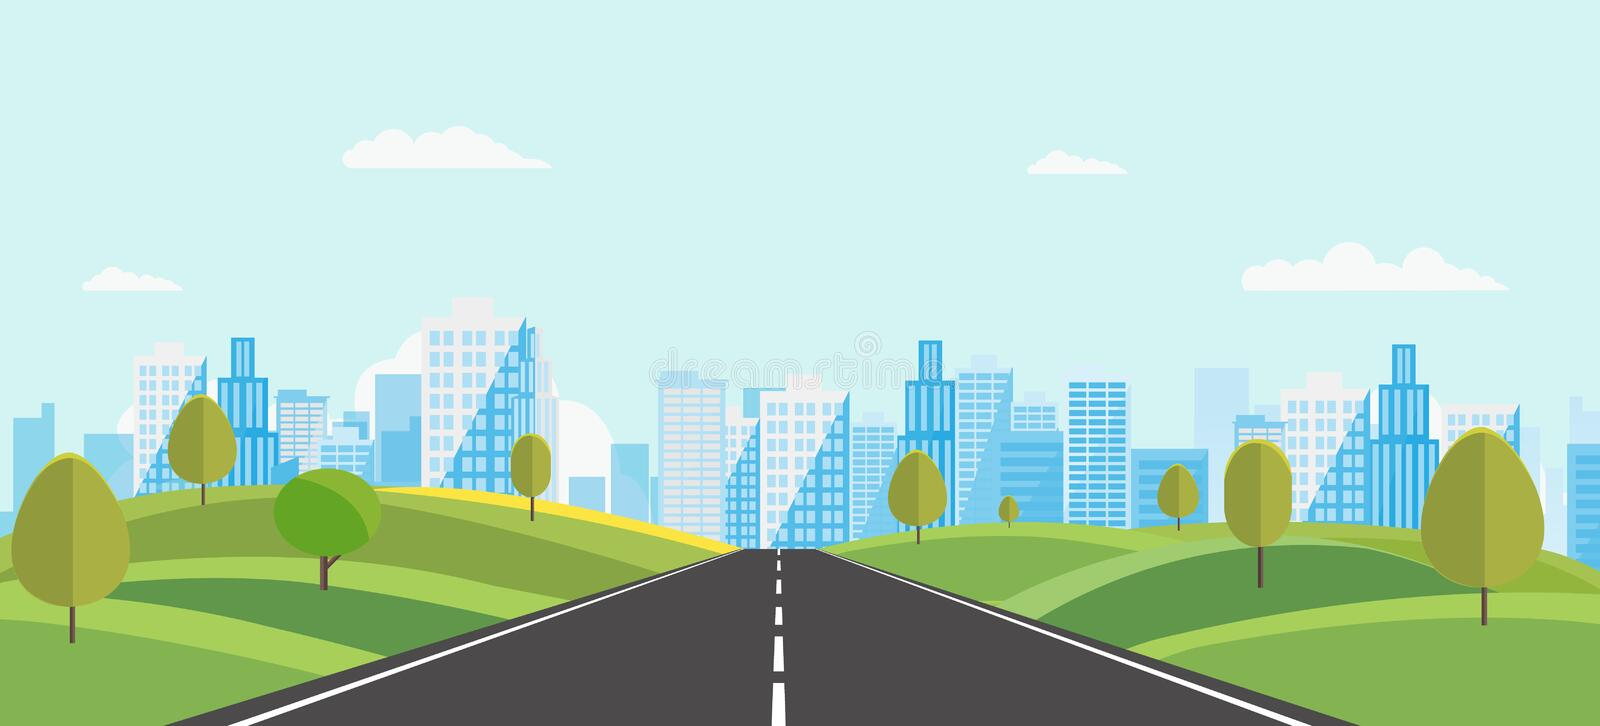 Public park with main street to city and sky background.Beautiful nature scene with town and hill.Vector illustration royalty free illustration